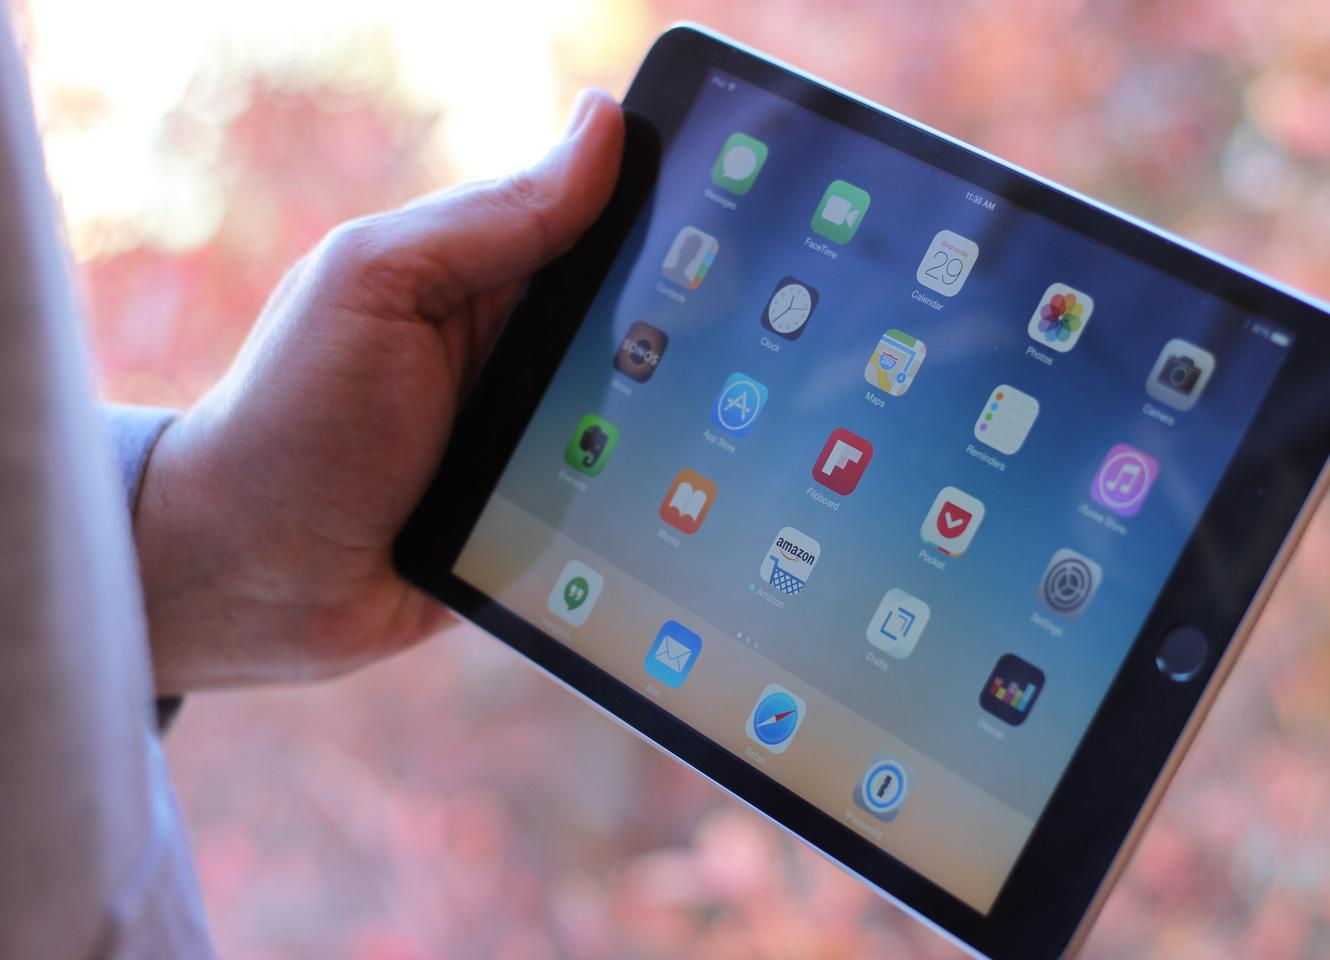 Like the two previous iPad minis, the Mini 3 has a 7.9-in screen (Photo: Will Shanklin/Gizmag.com)